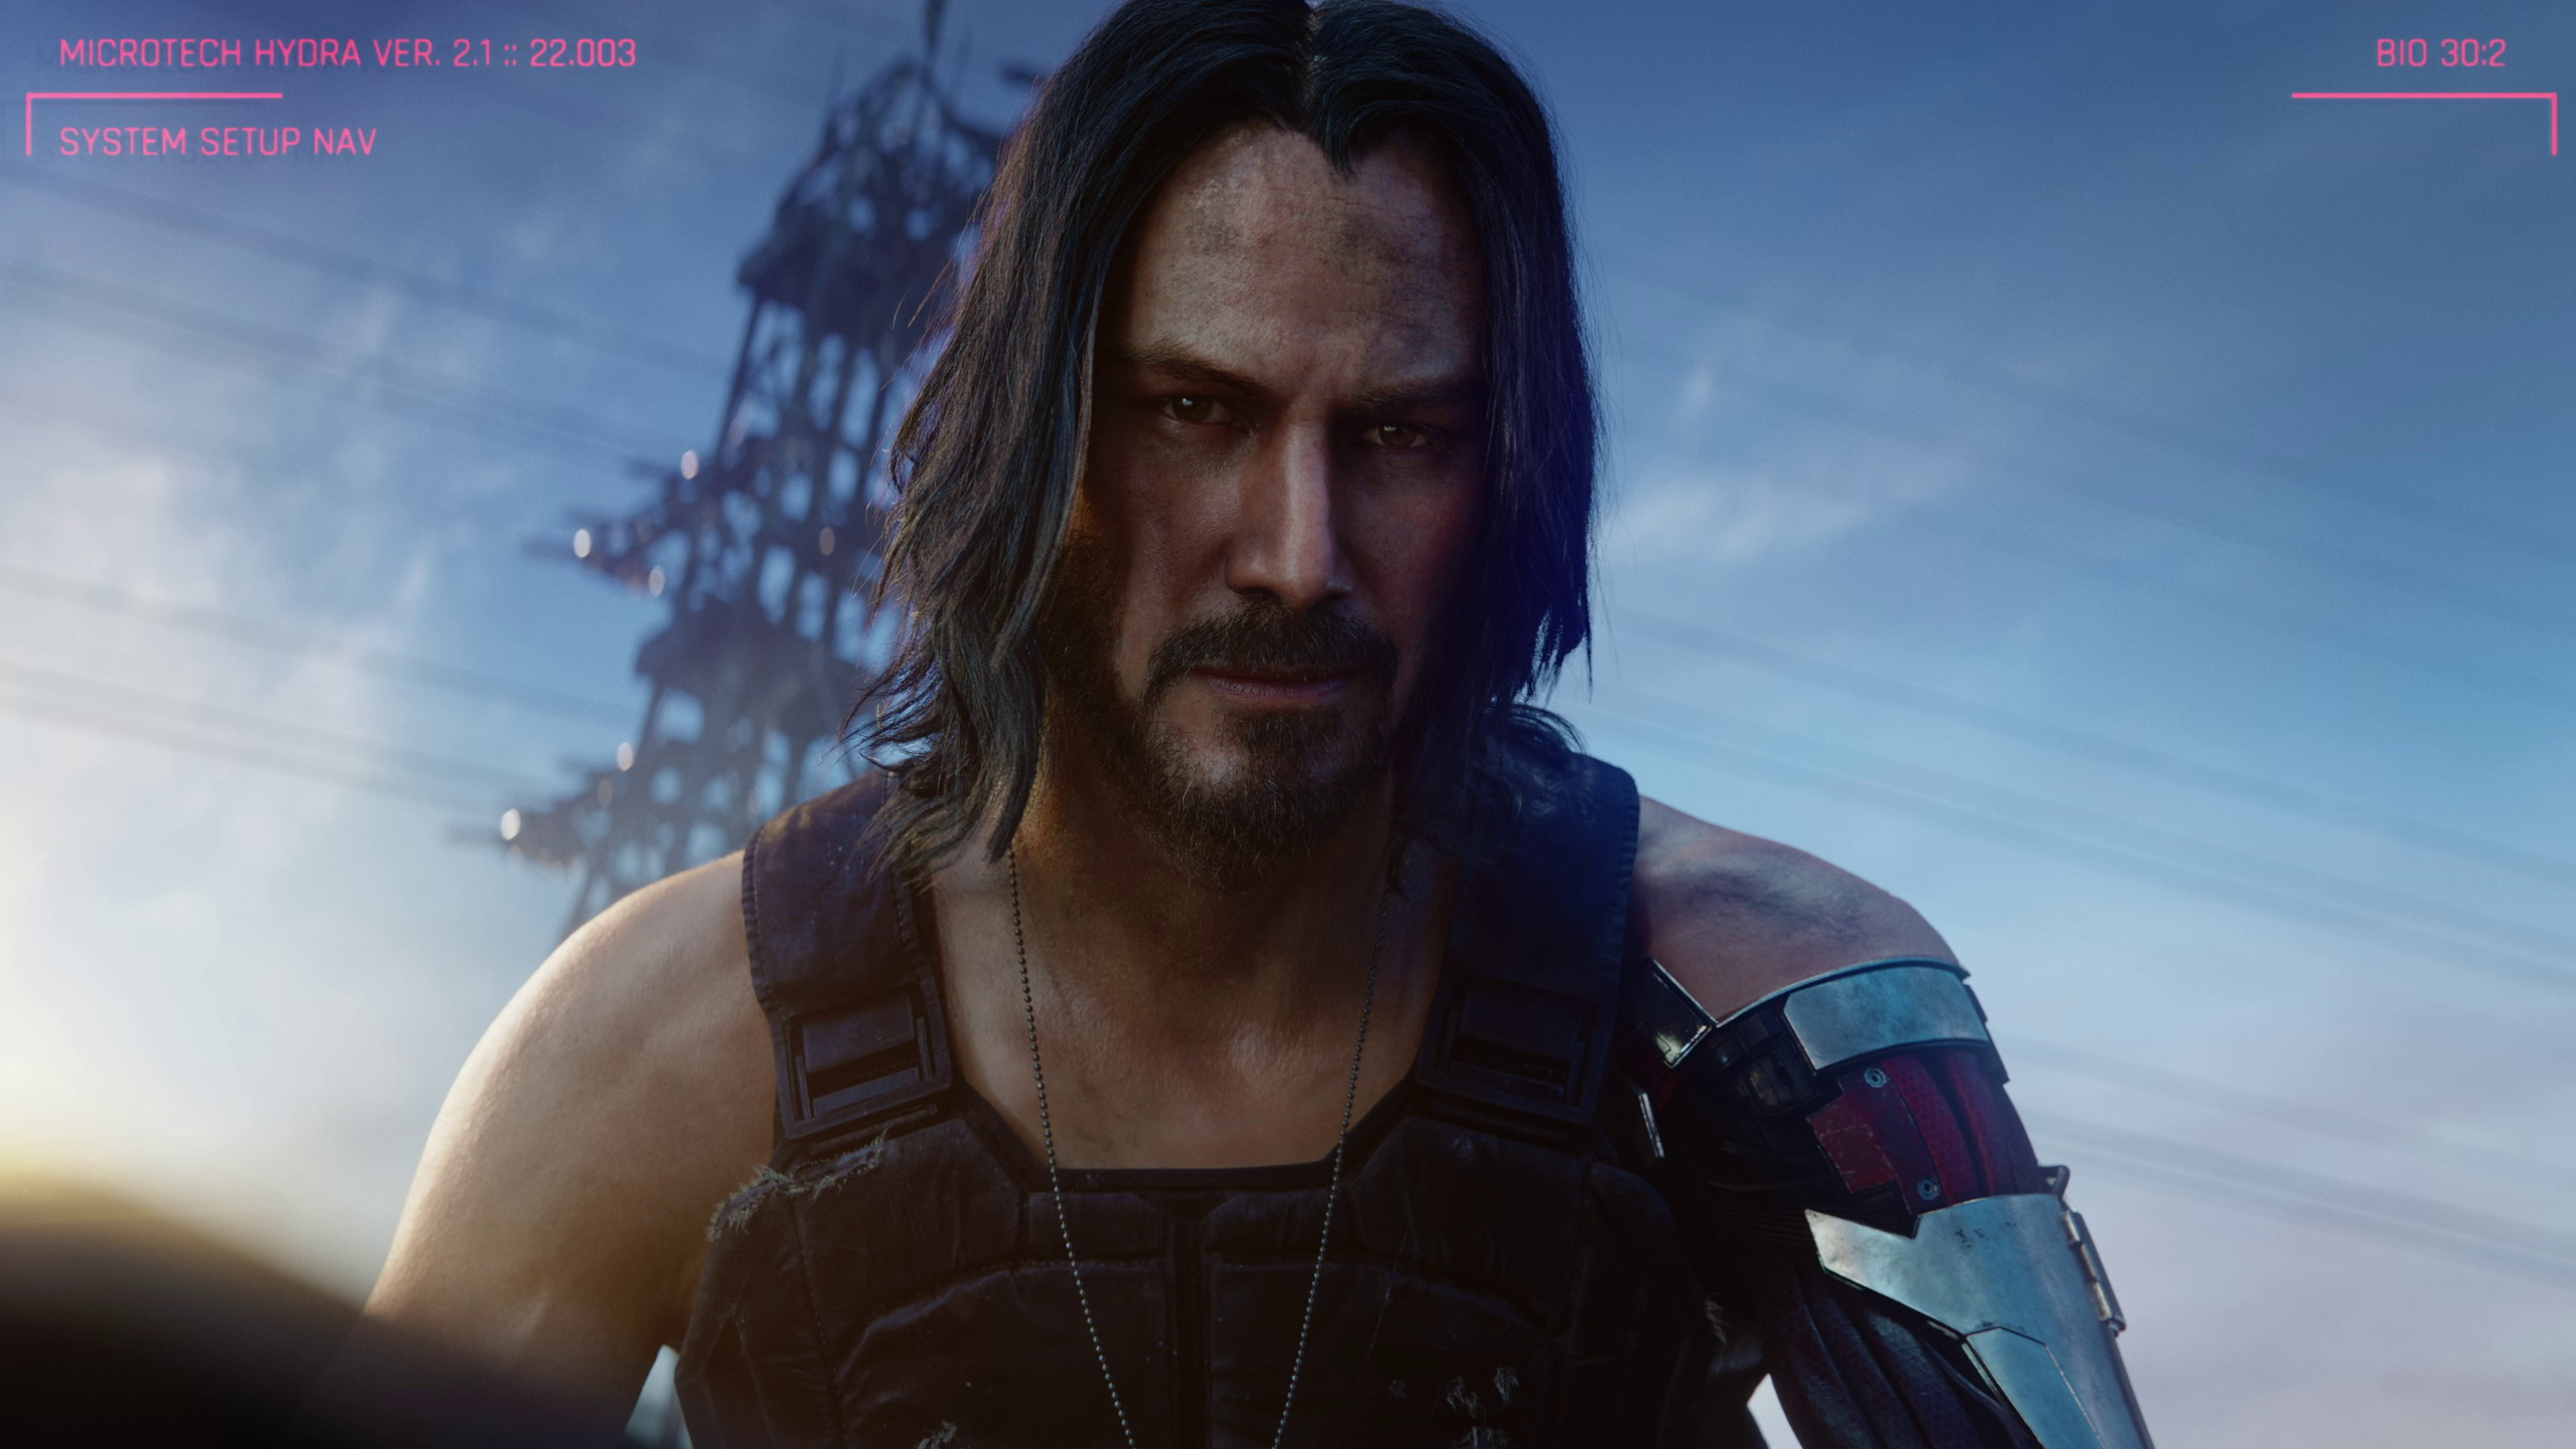 Johnny Silverhand, the Keanu Reeves fella, in a frame from E3 2019's Cyberpunk 2077 cinematic trailer.